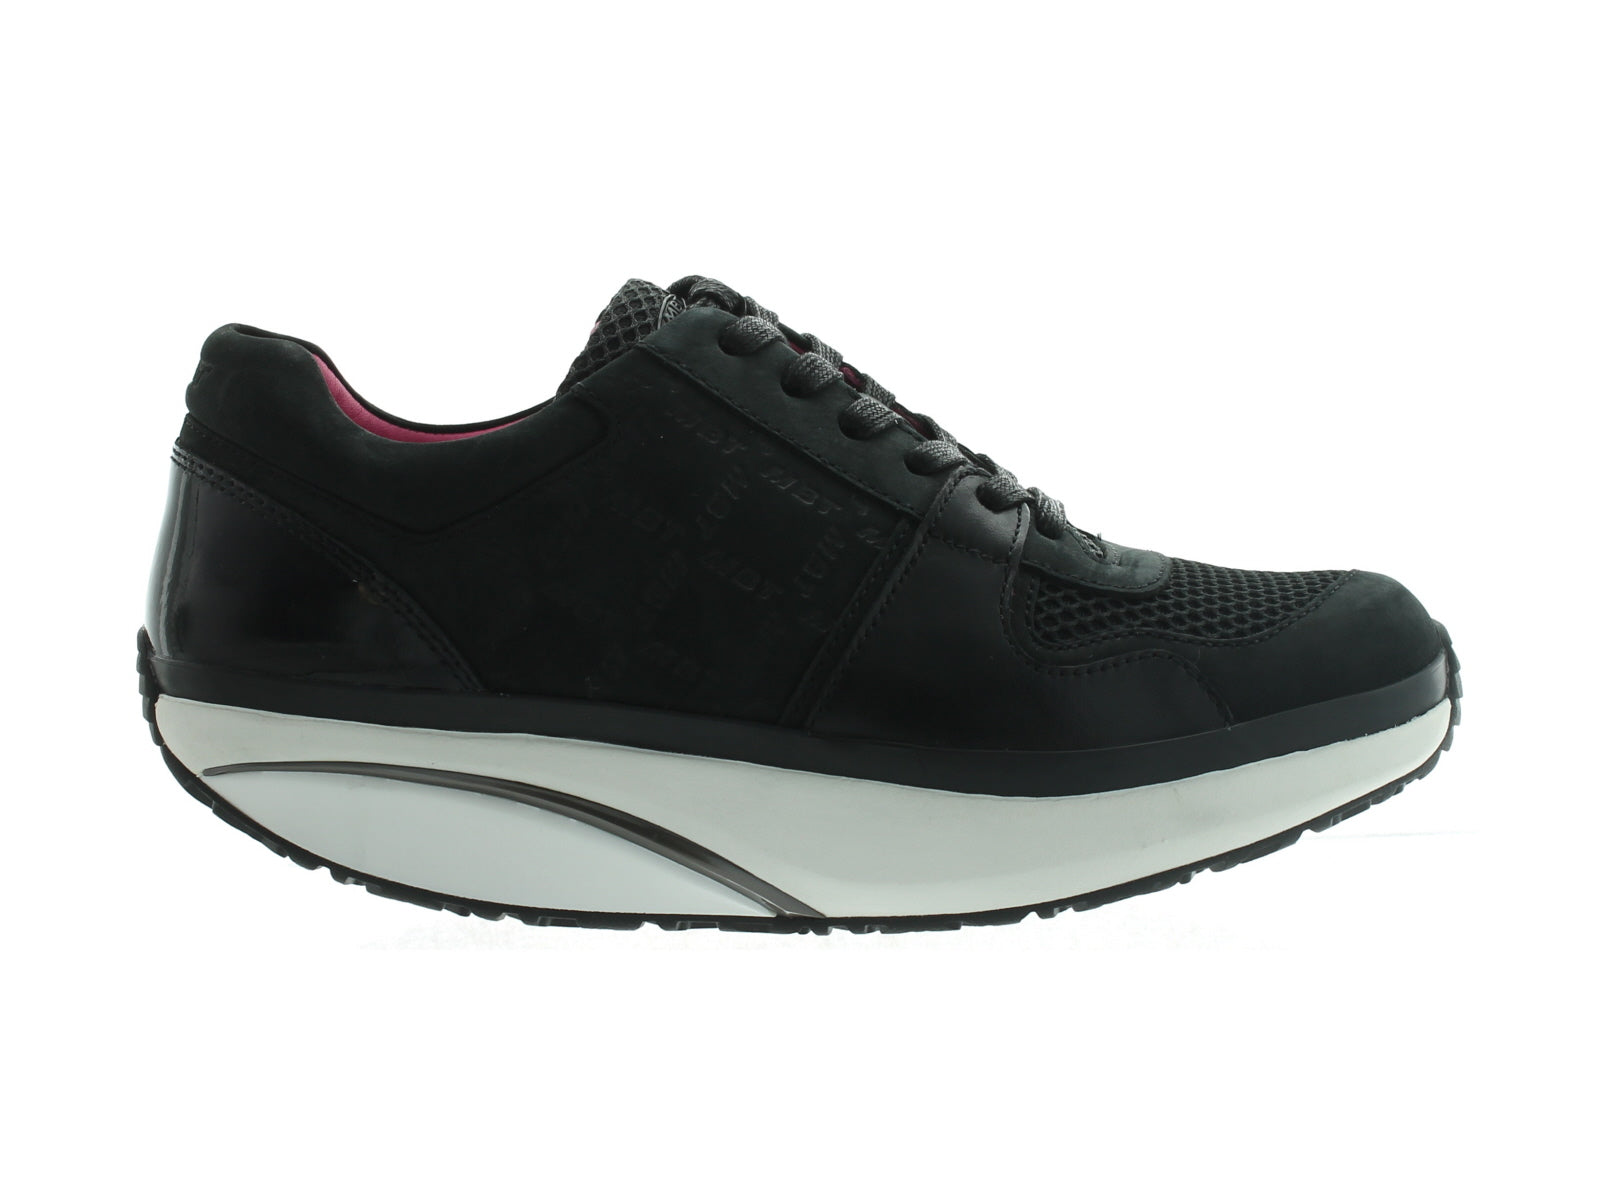 Mbt Nafasi 6 W Black Sneakers At Walsh Brothers Shoes